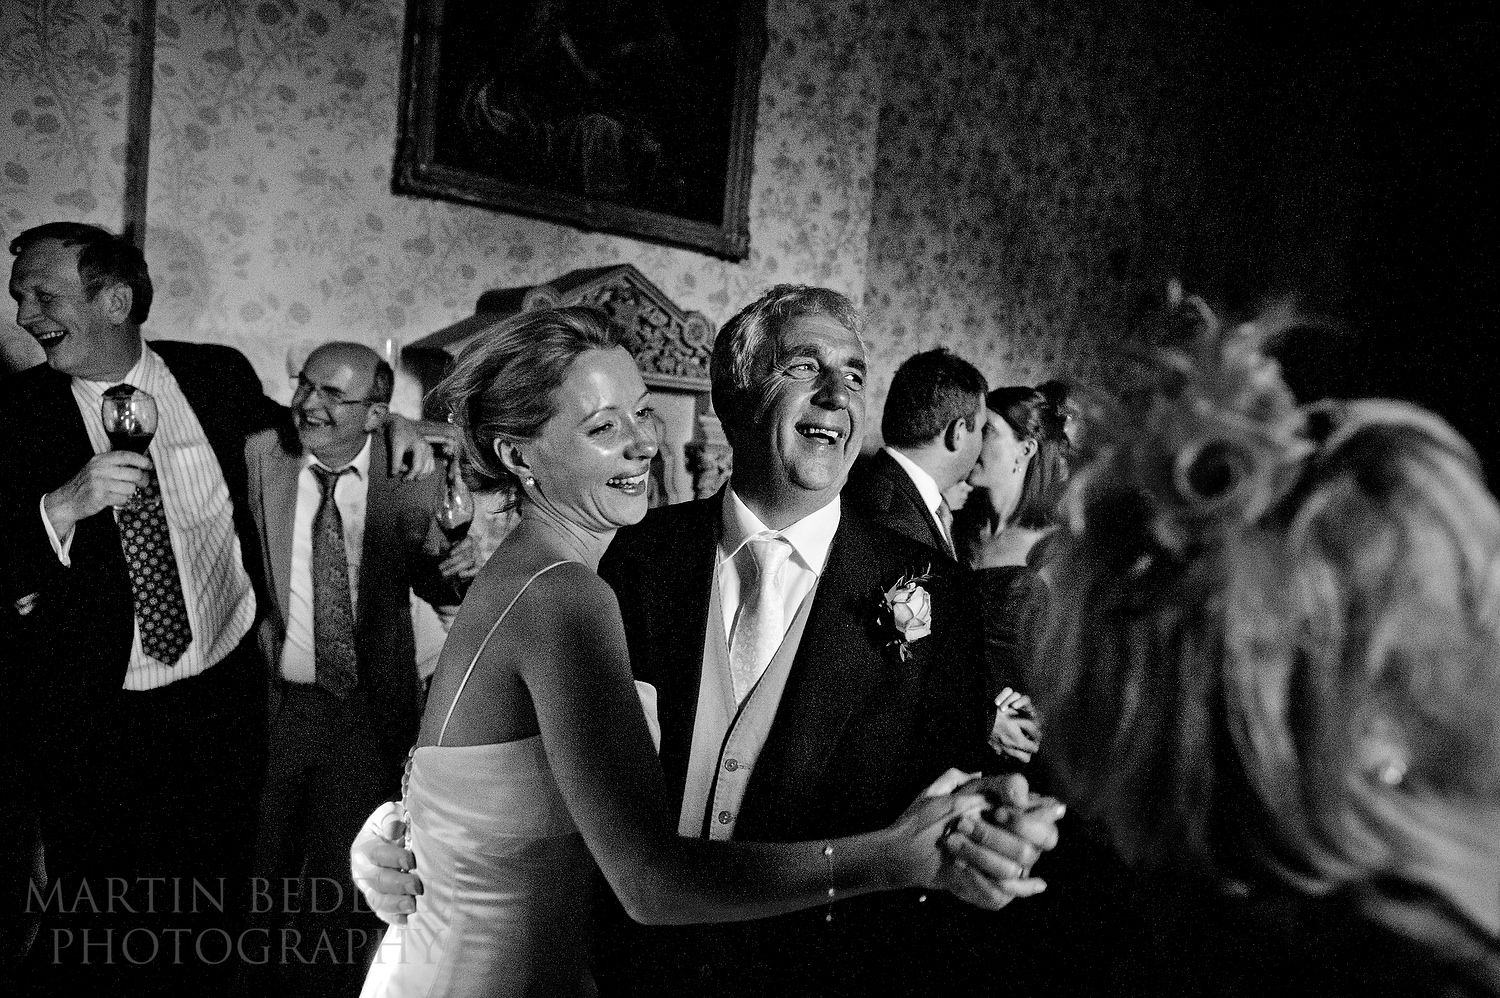 Bride and her father dance at The Elvetham hotel